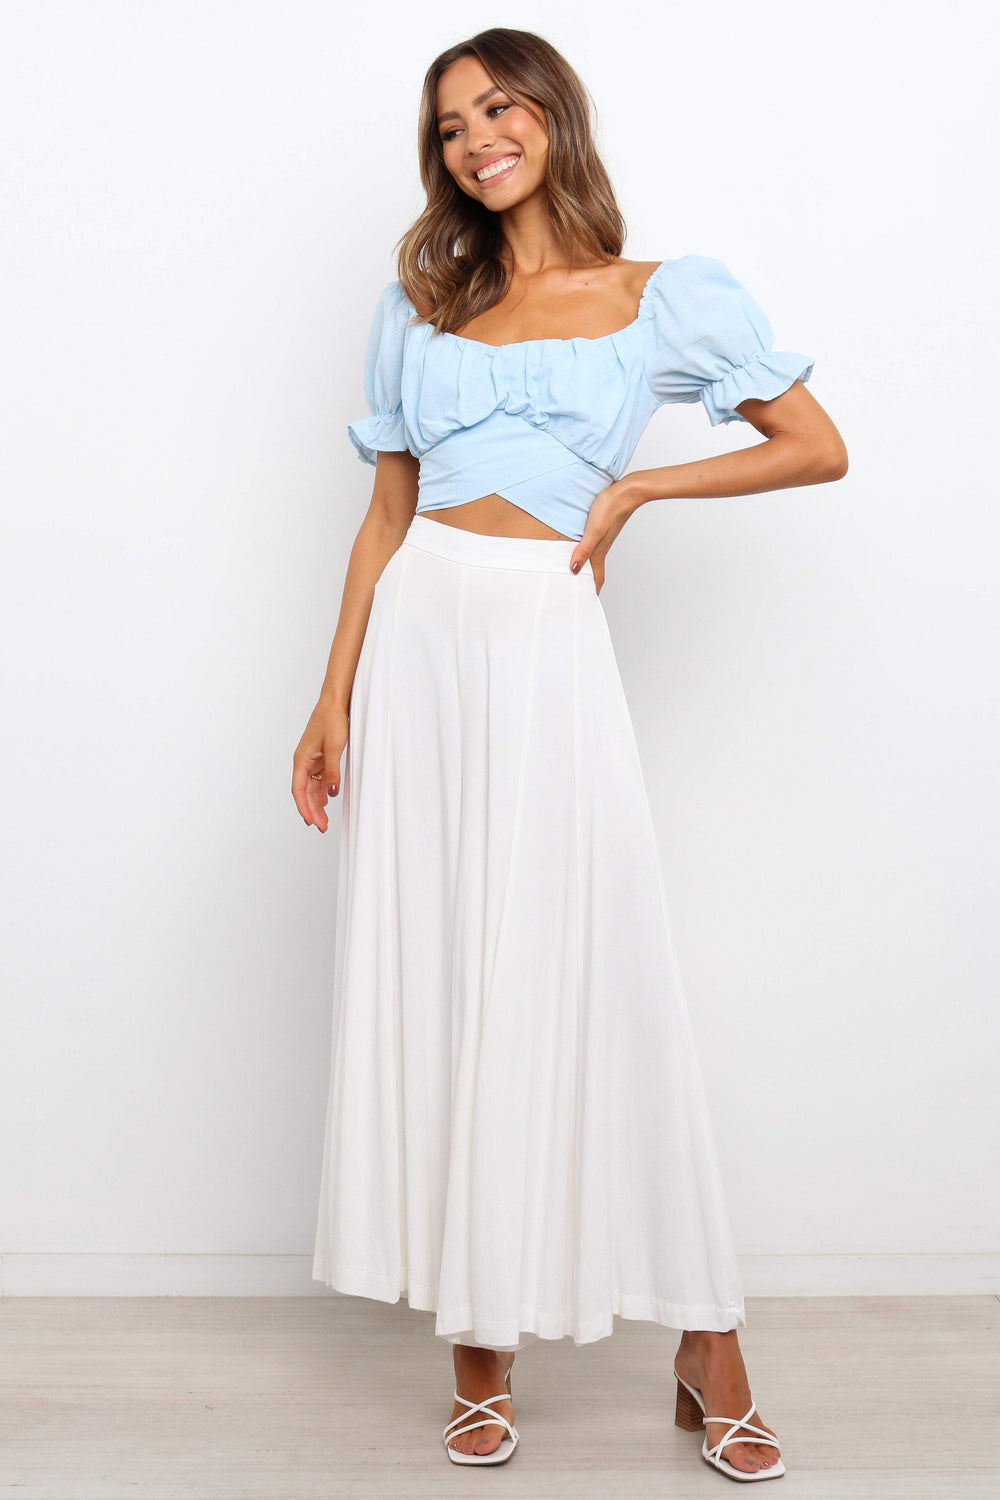 TOPS Sacchi Top - Light Blue